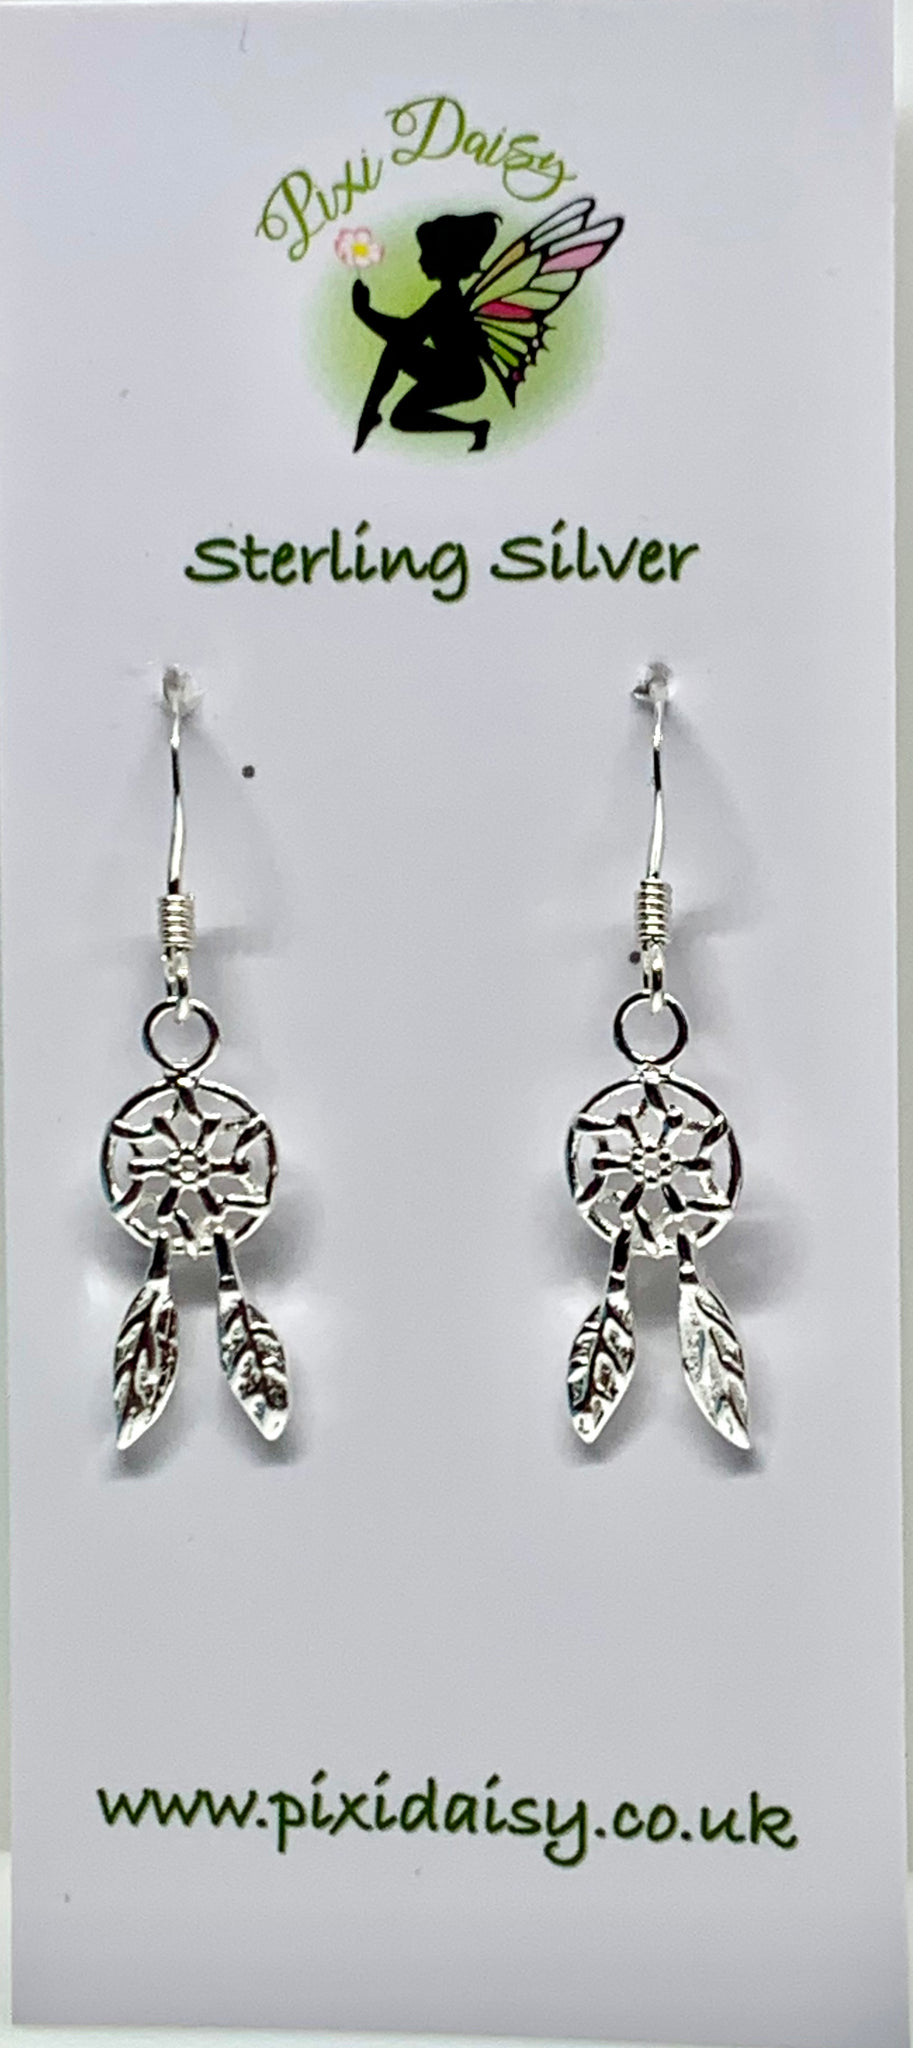 Silver Dreamcatcher Earrings from Pixi Daisy